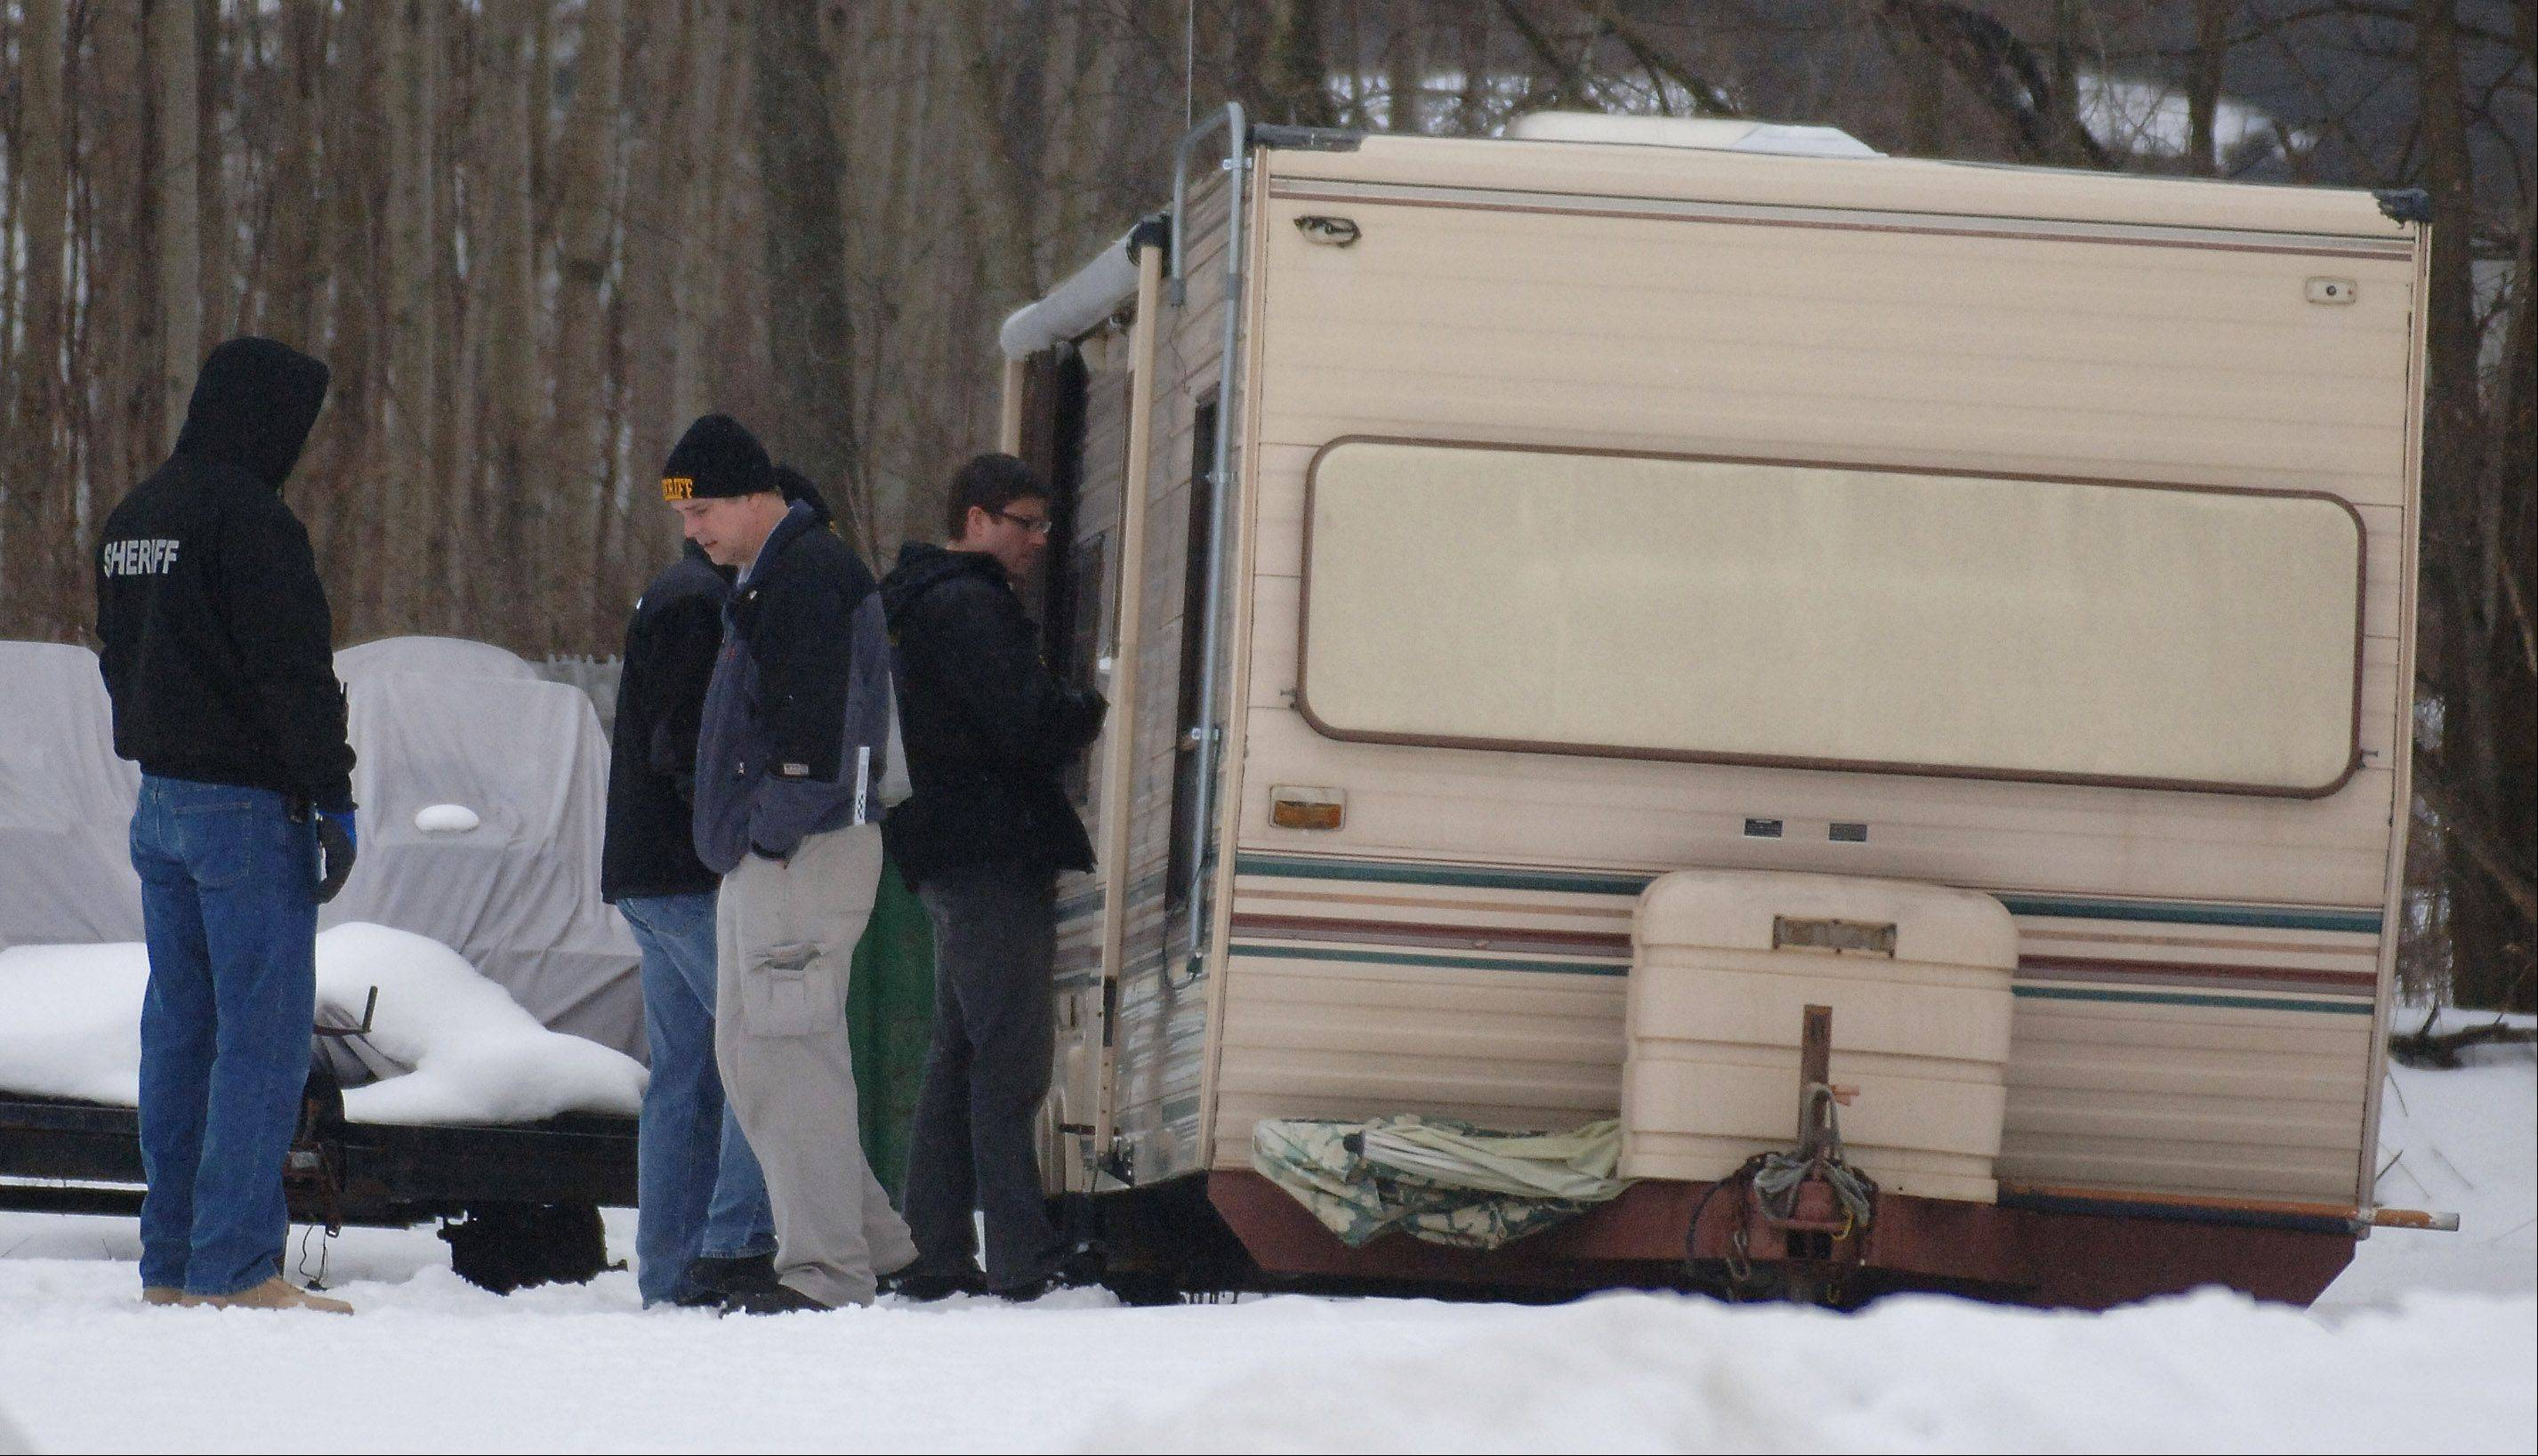 Police examine the camping trailer where murder suspect Paul Neff, 57, killed himself after a police standoff. Police say Neff, who lived in the Mundelein area, killed his ex-girlfriend, Diane Kephart.